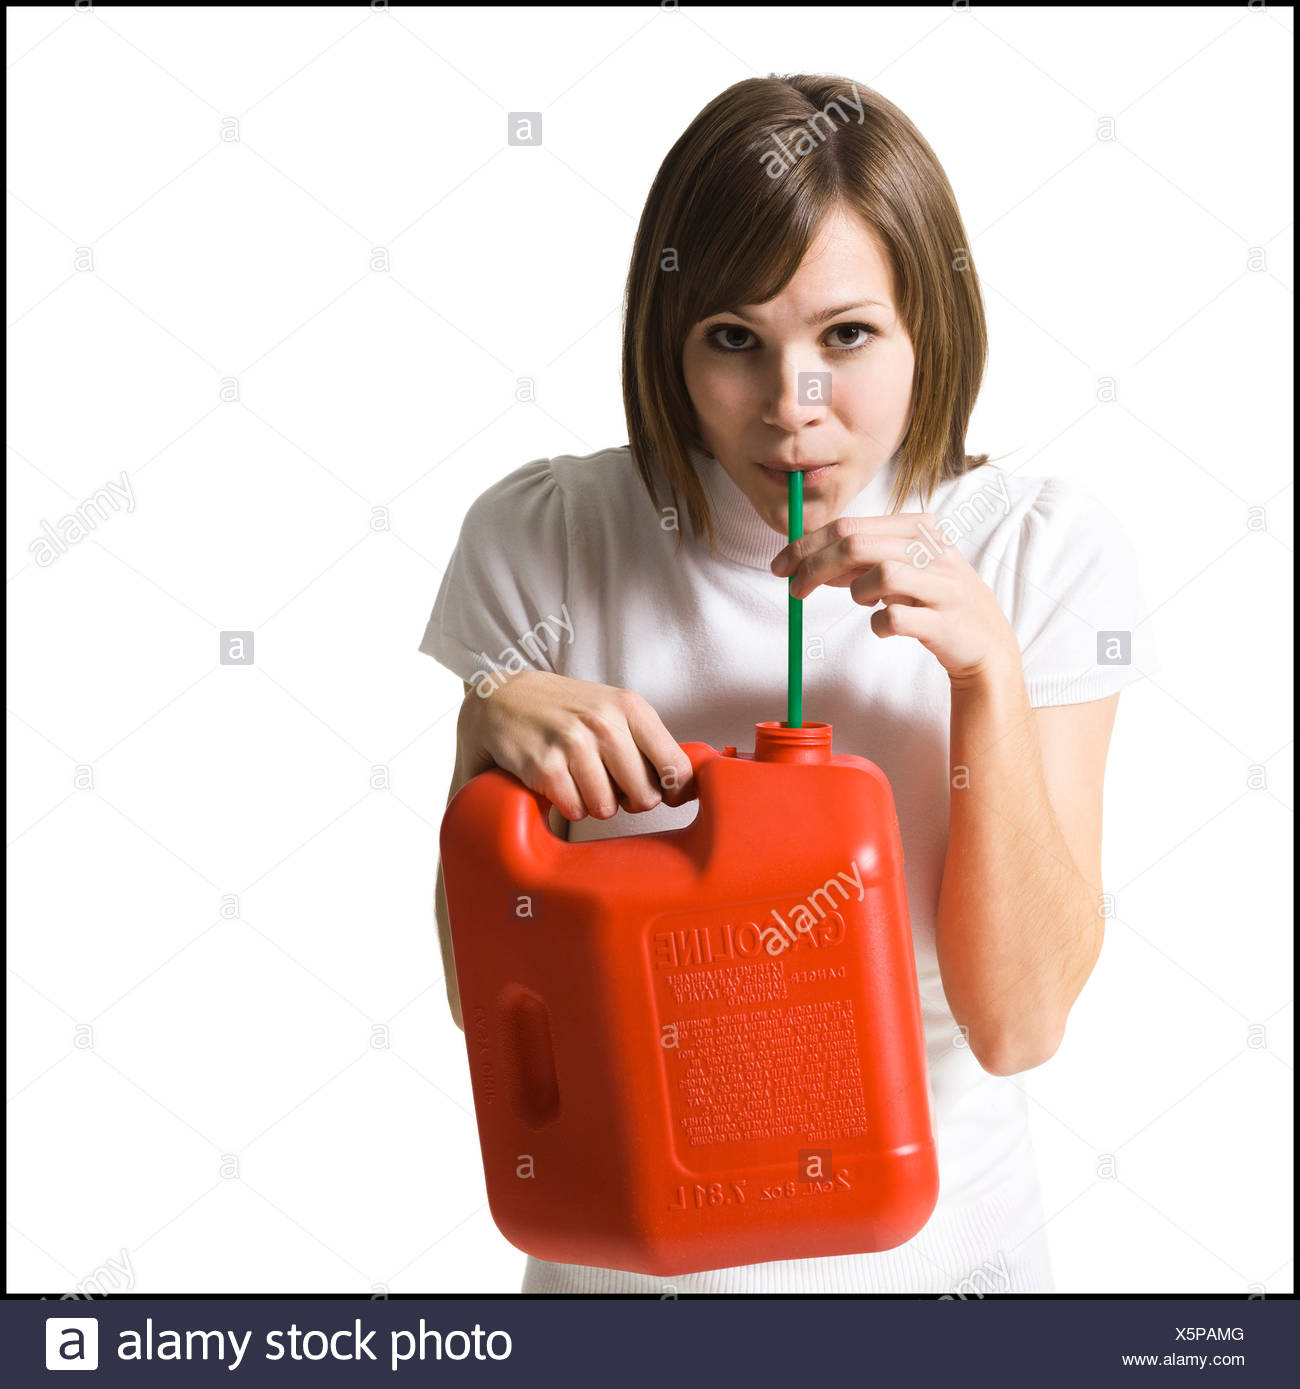 woman with a gas can - Stock Image